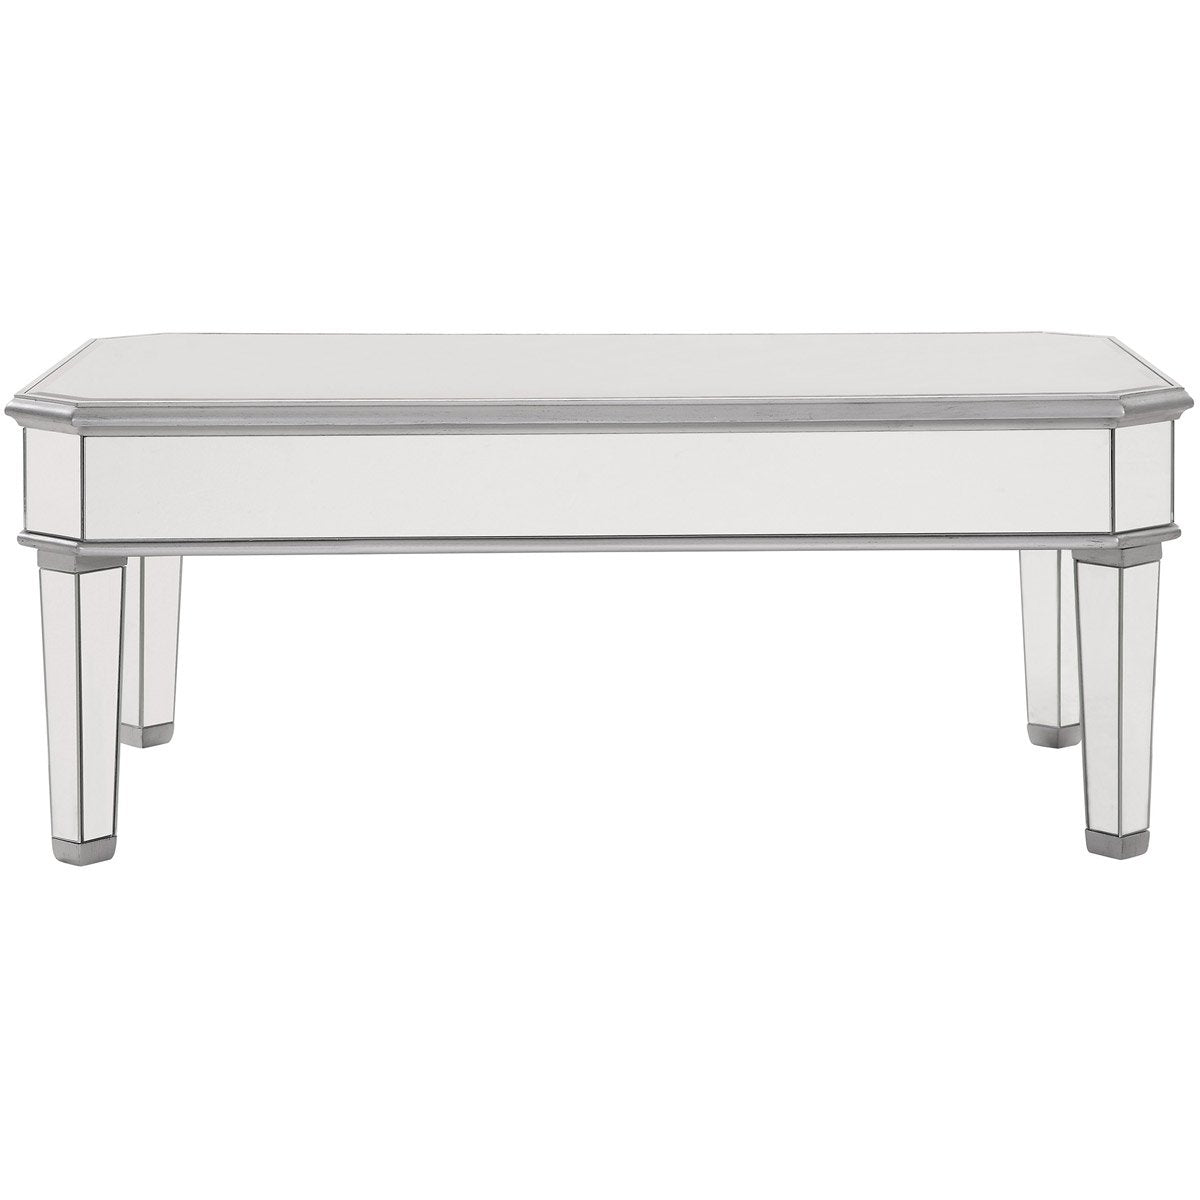 Contempo 48 X 19 Rectangle Coffee Table - Antique Silver Finish (Mf6-1022S) Coffee Table